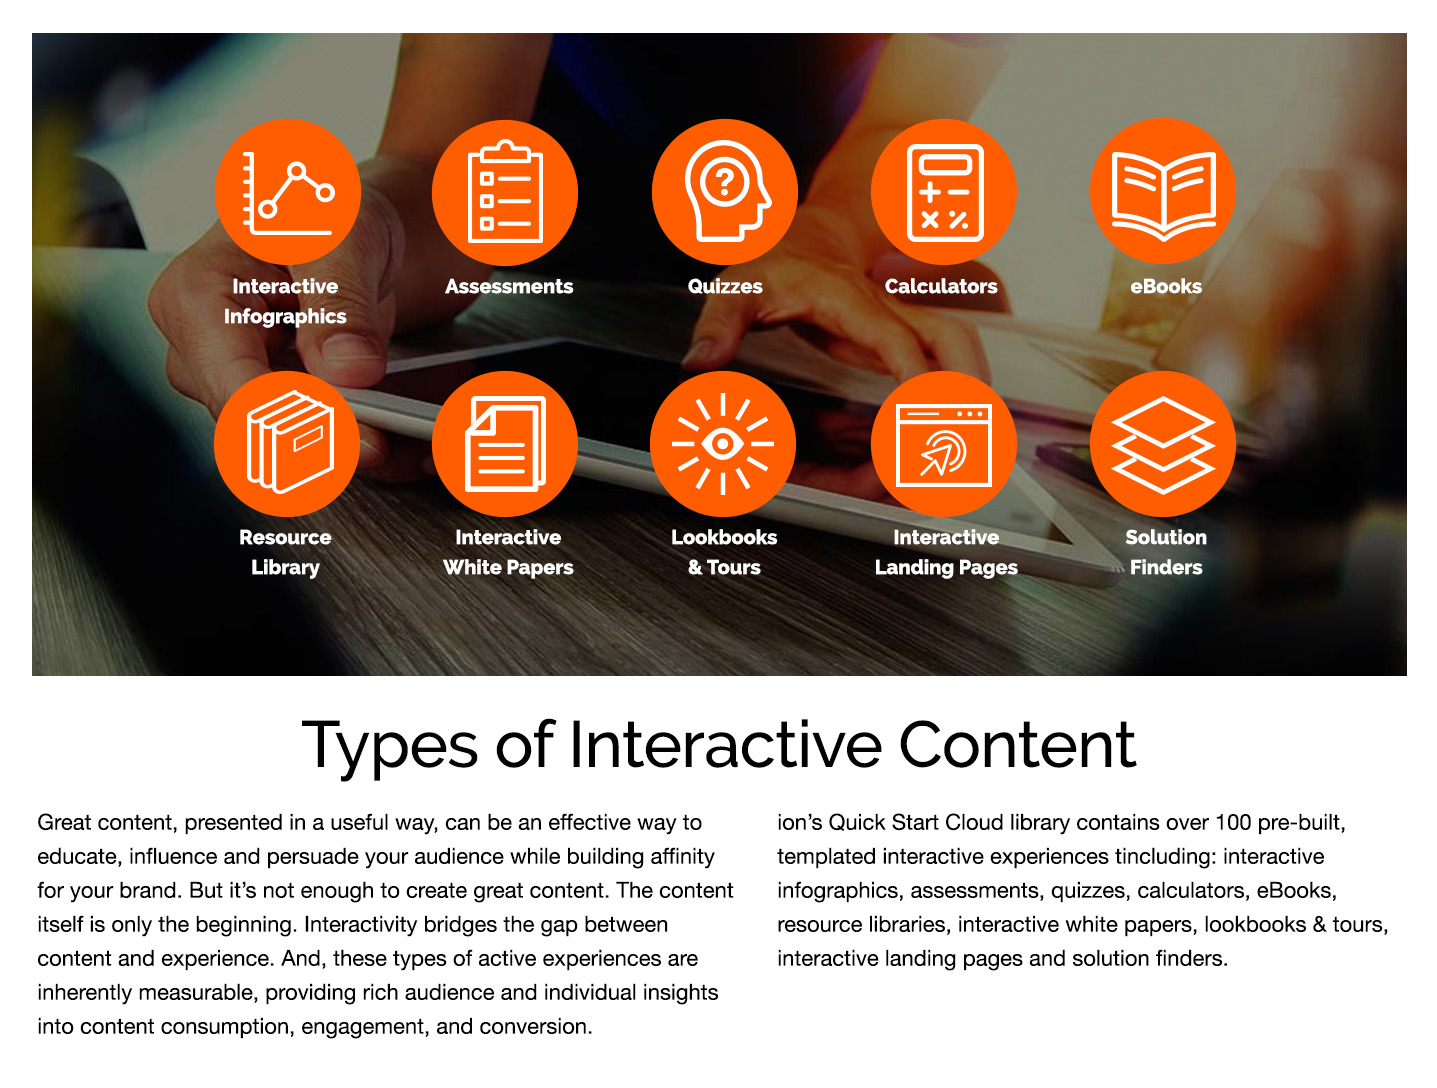 ion interactive Demo - Types of Interactive Content